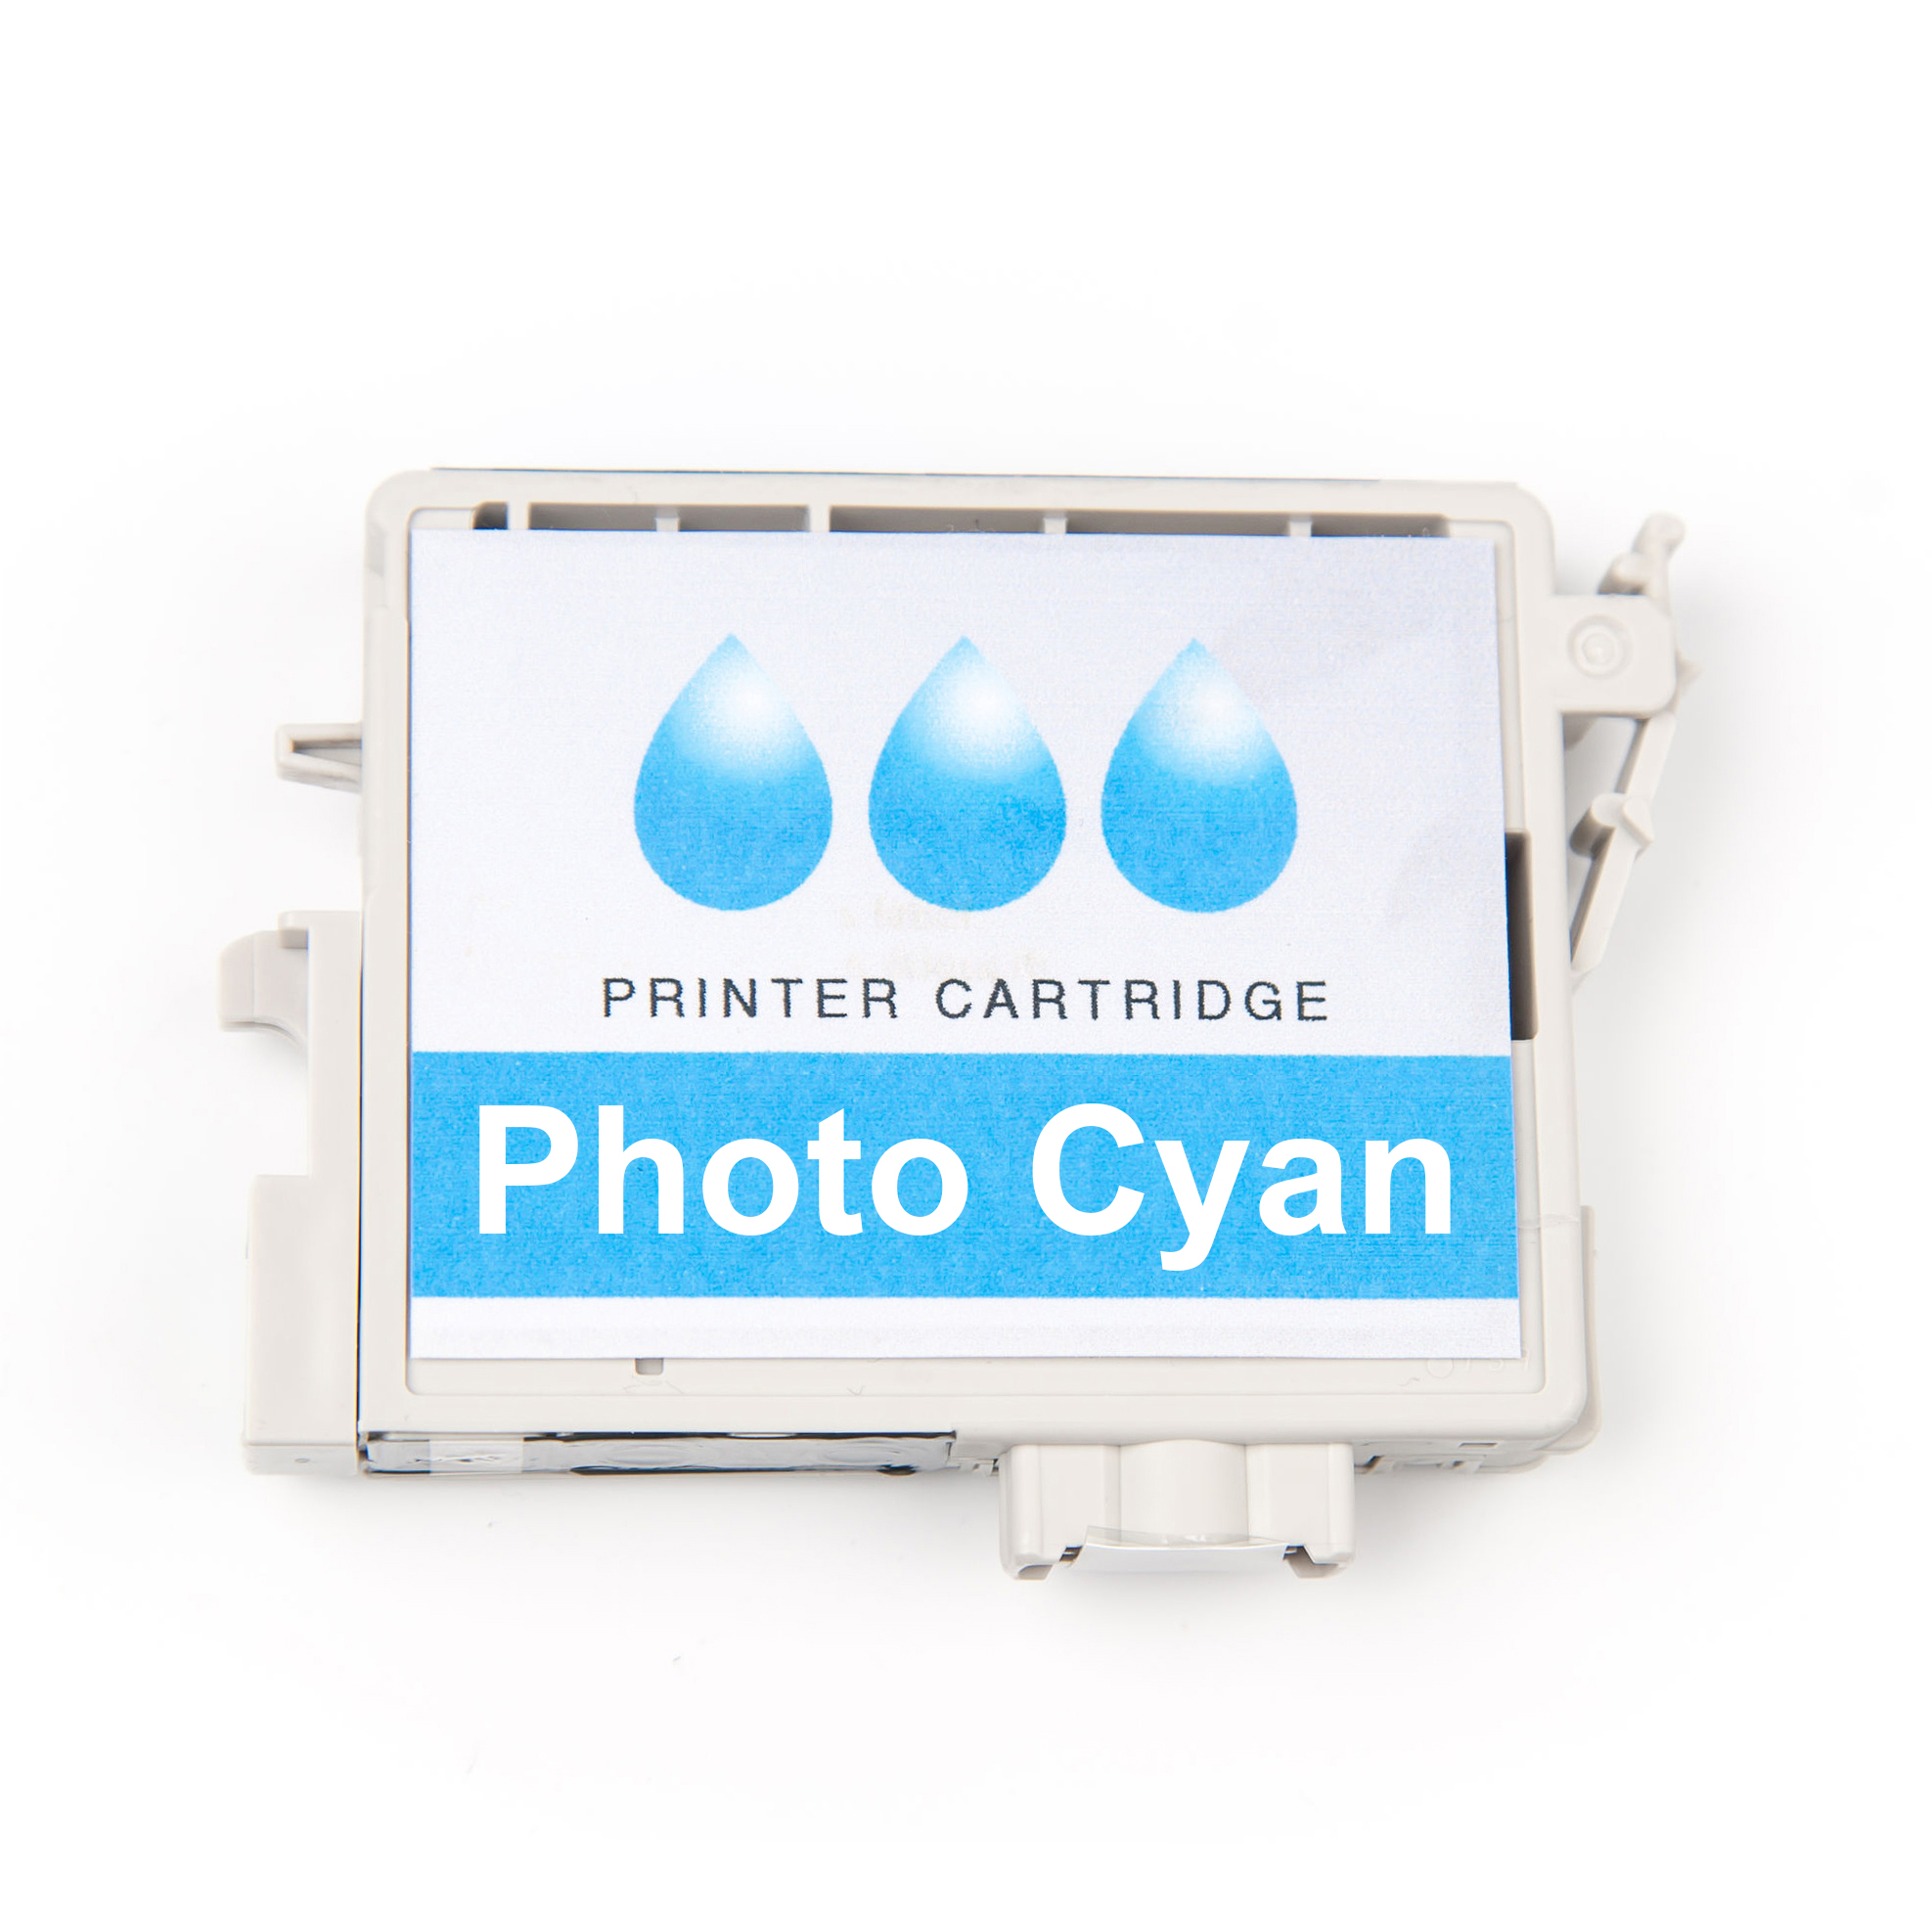 Cheap canon business card printer cx 350 ink cartridges original canon 8139a002 bjip300lc ink cartridge bright cyan reheart Image collections